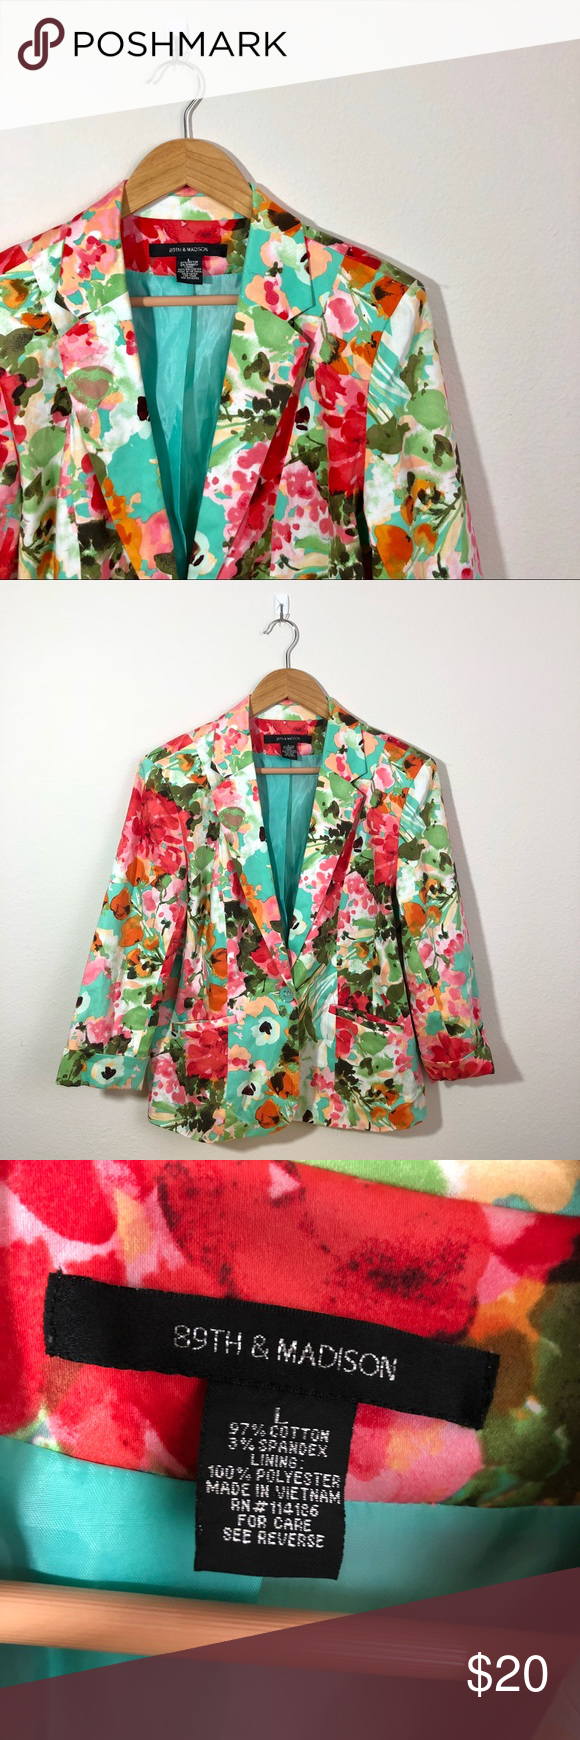 89th & Madison Floral Blazer This blazer is in perfect condition!  Size large  Great for work! Pit to pit is approx 22 inches  Length is approx 24 inches  Offers welcome!  Smoke and pet free home! No flaws like stains or holes! No modeling No trades! 89th & Madison Jackets & Coats Blazers